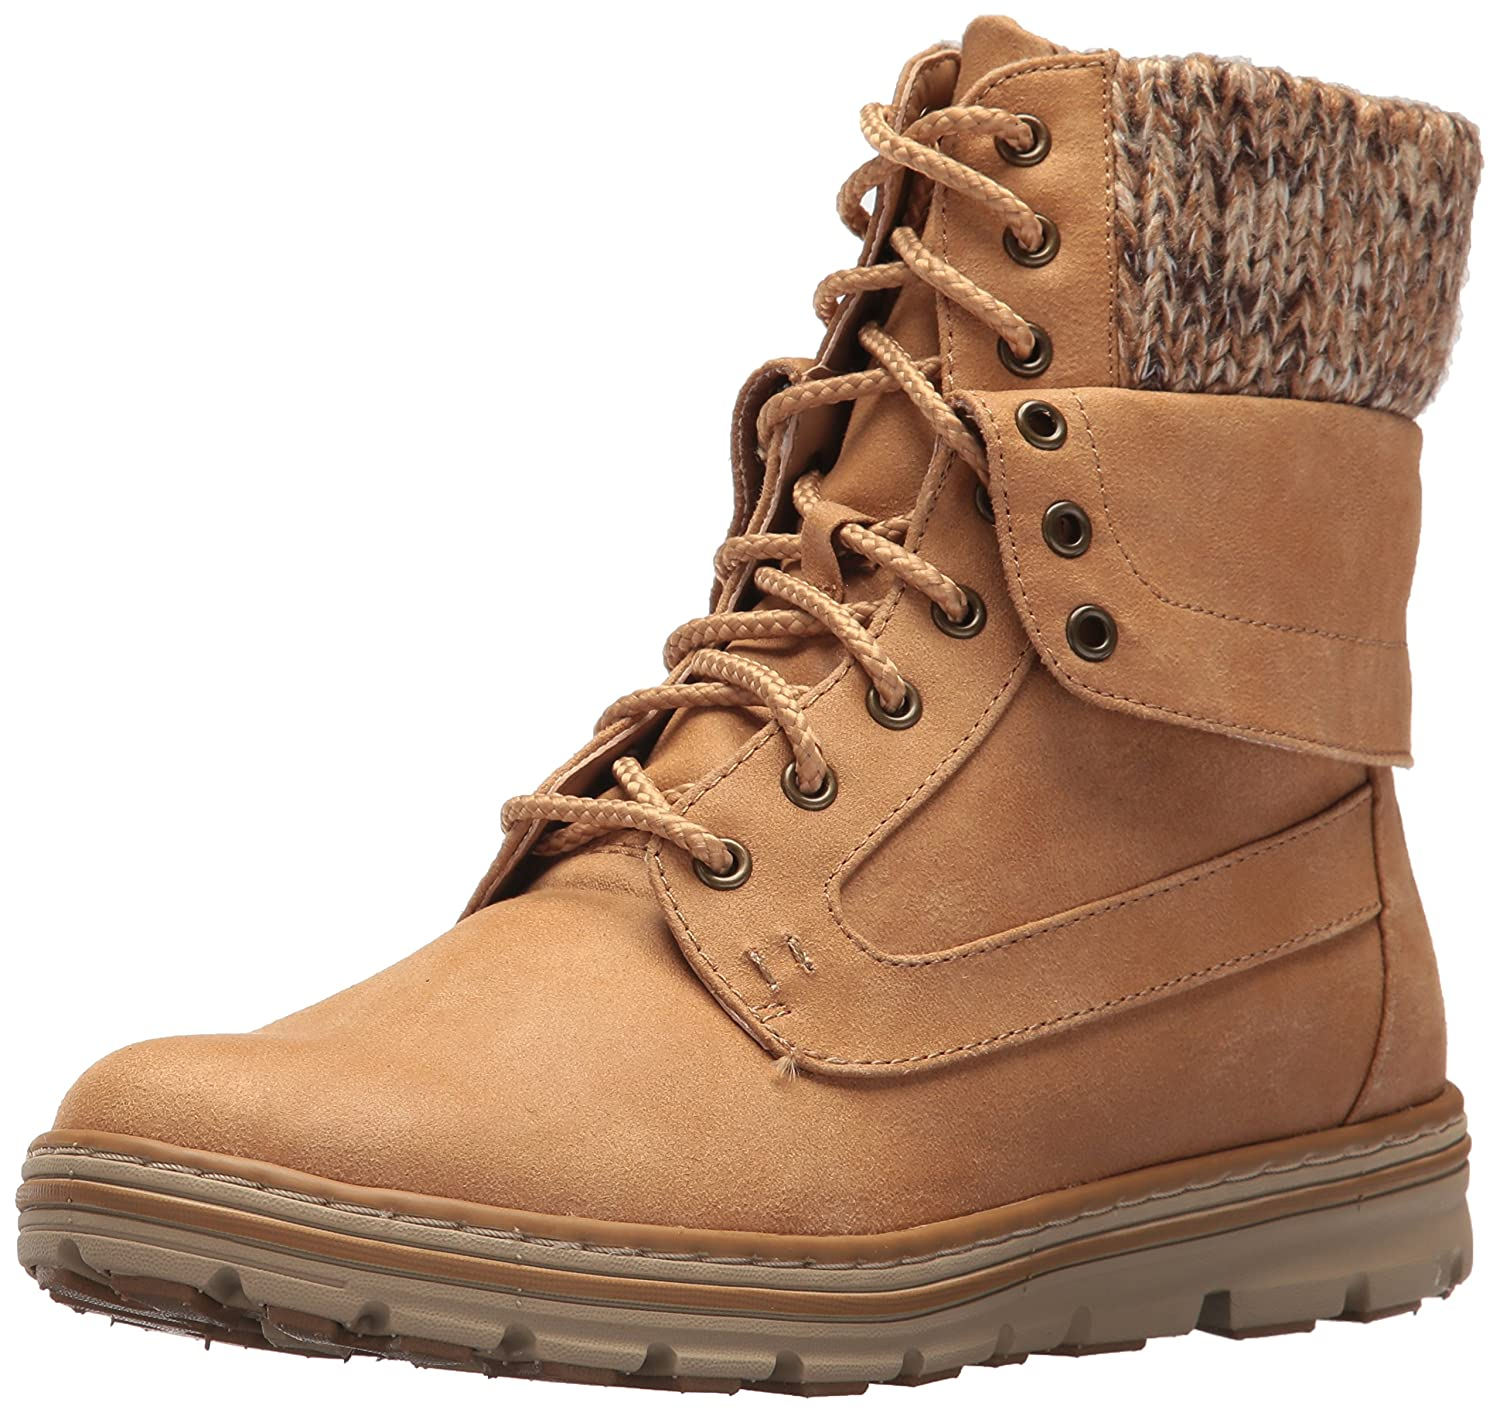 CLIFFS BY WHITE MOUNTAIN Women's Kenrick Hiking Boot B074PJ47B1 7 B(M) US|Wheat